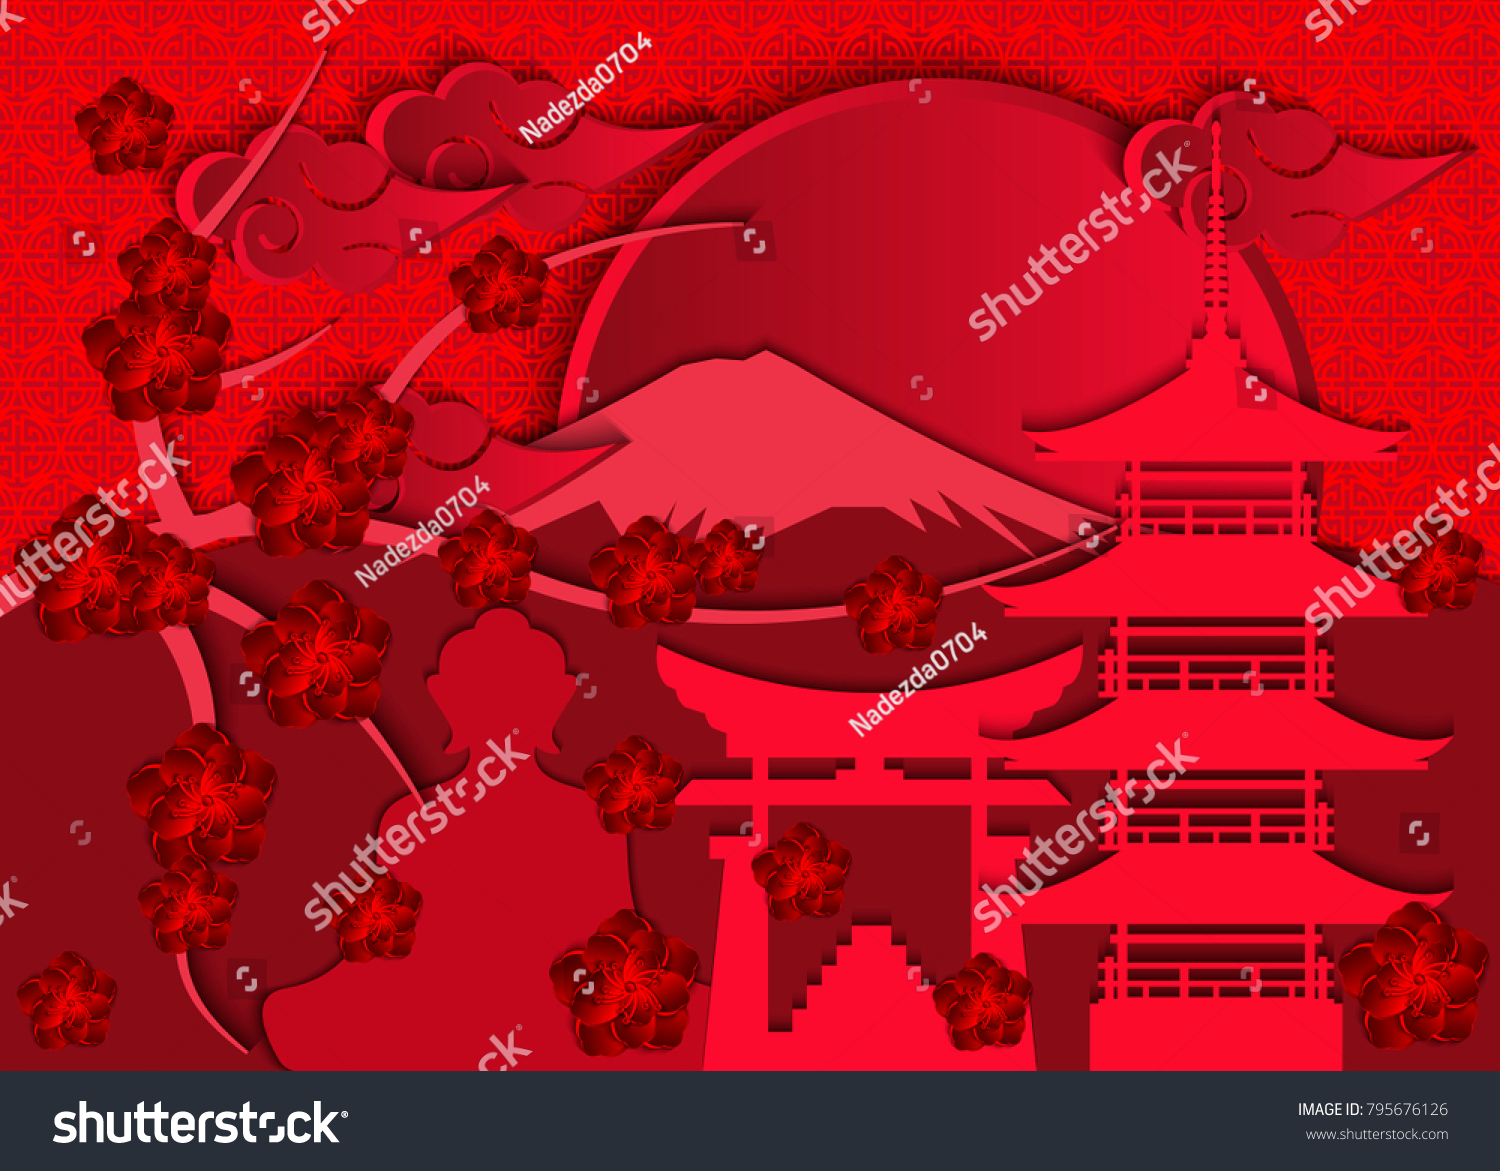 Branches Cherry Blossoms Symbols Japanese Culture Stock Vector